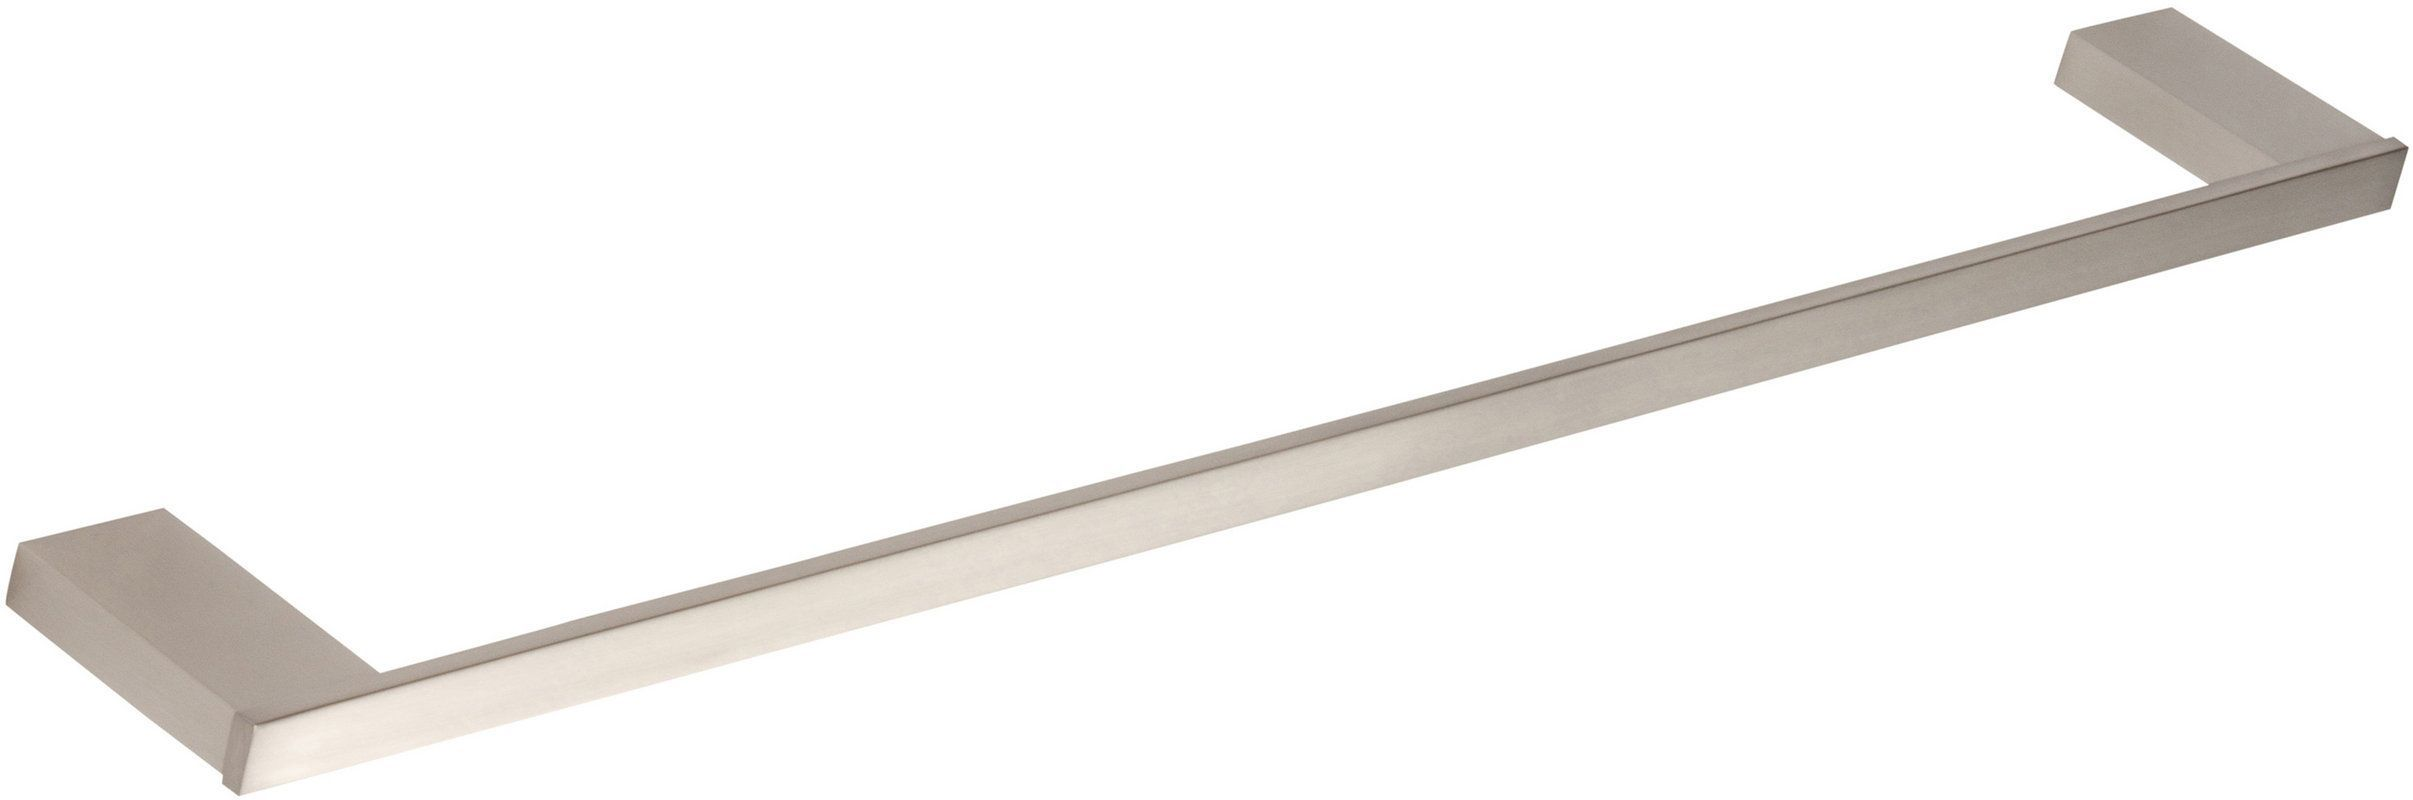 Atlas Homewares Patb450 Brn Brushed Nickel 17 Inch Towel Bar From The Parker Collection